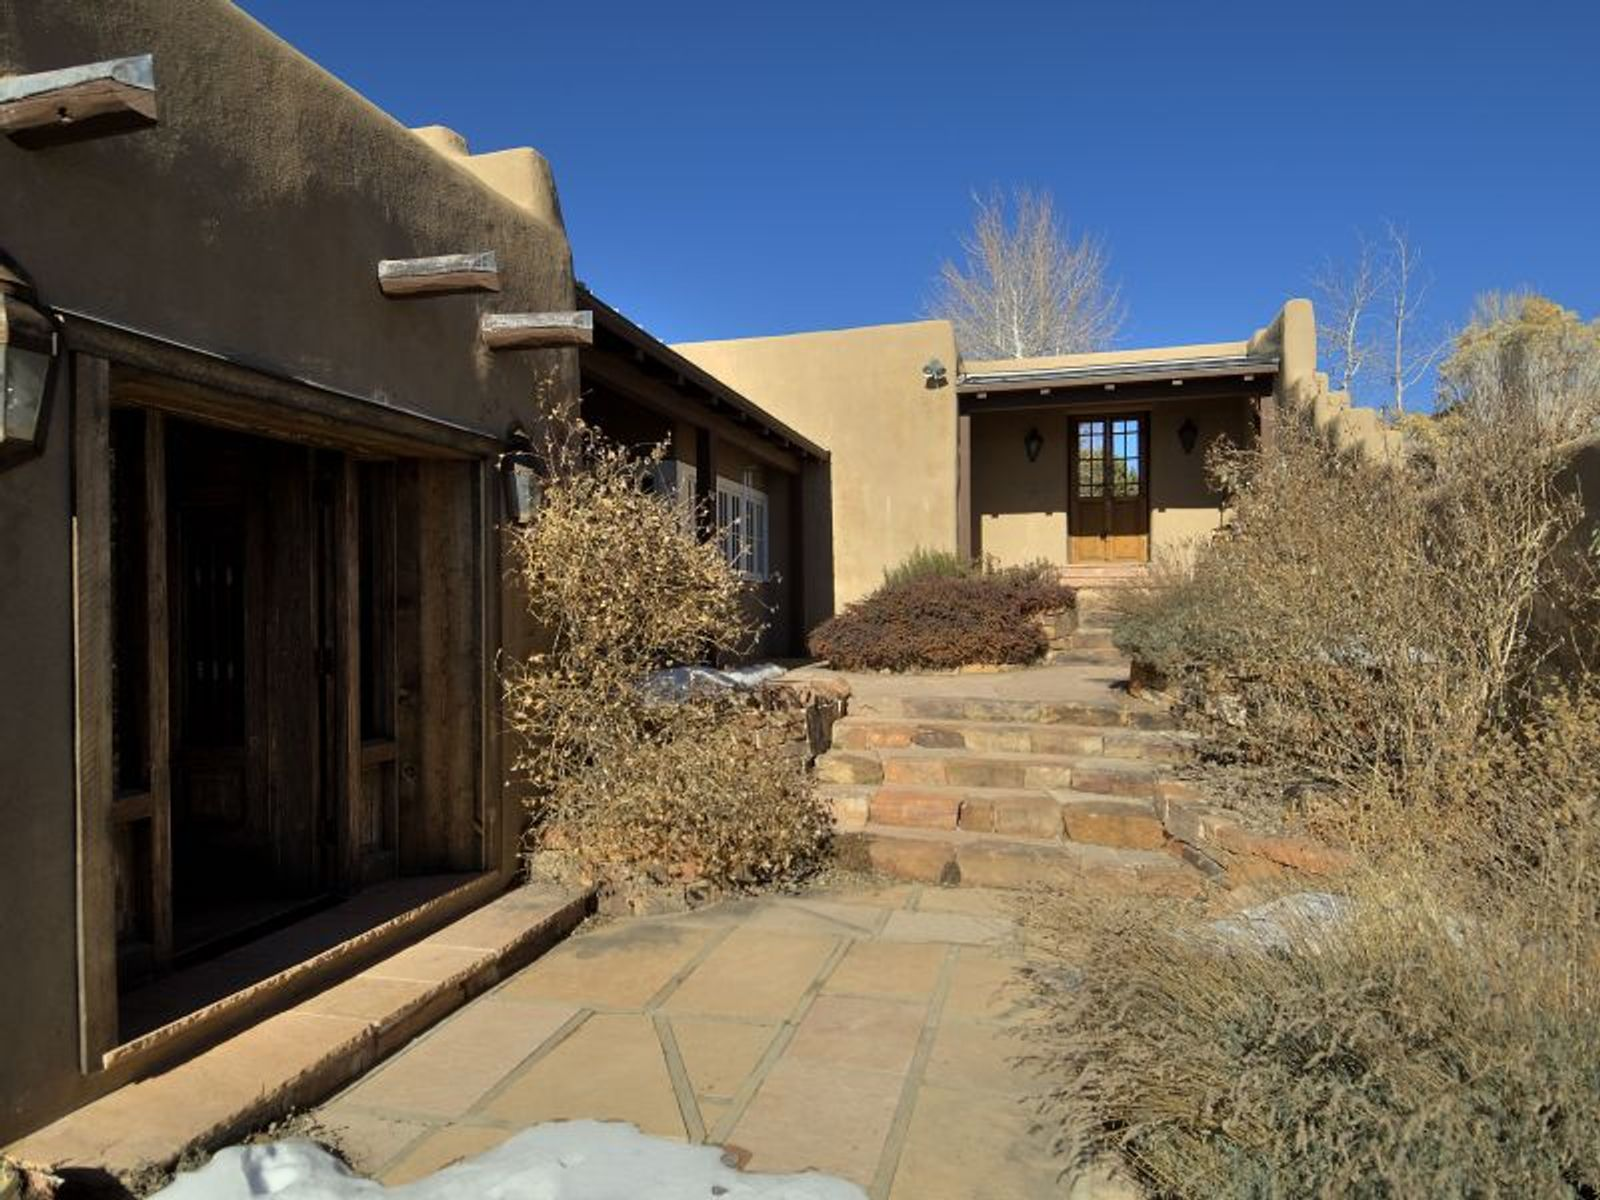 751 Canada Ancha, Santa Fe NM Single Family Home - Santa Fe Real Estate